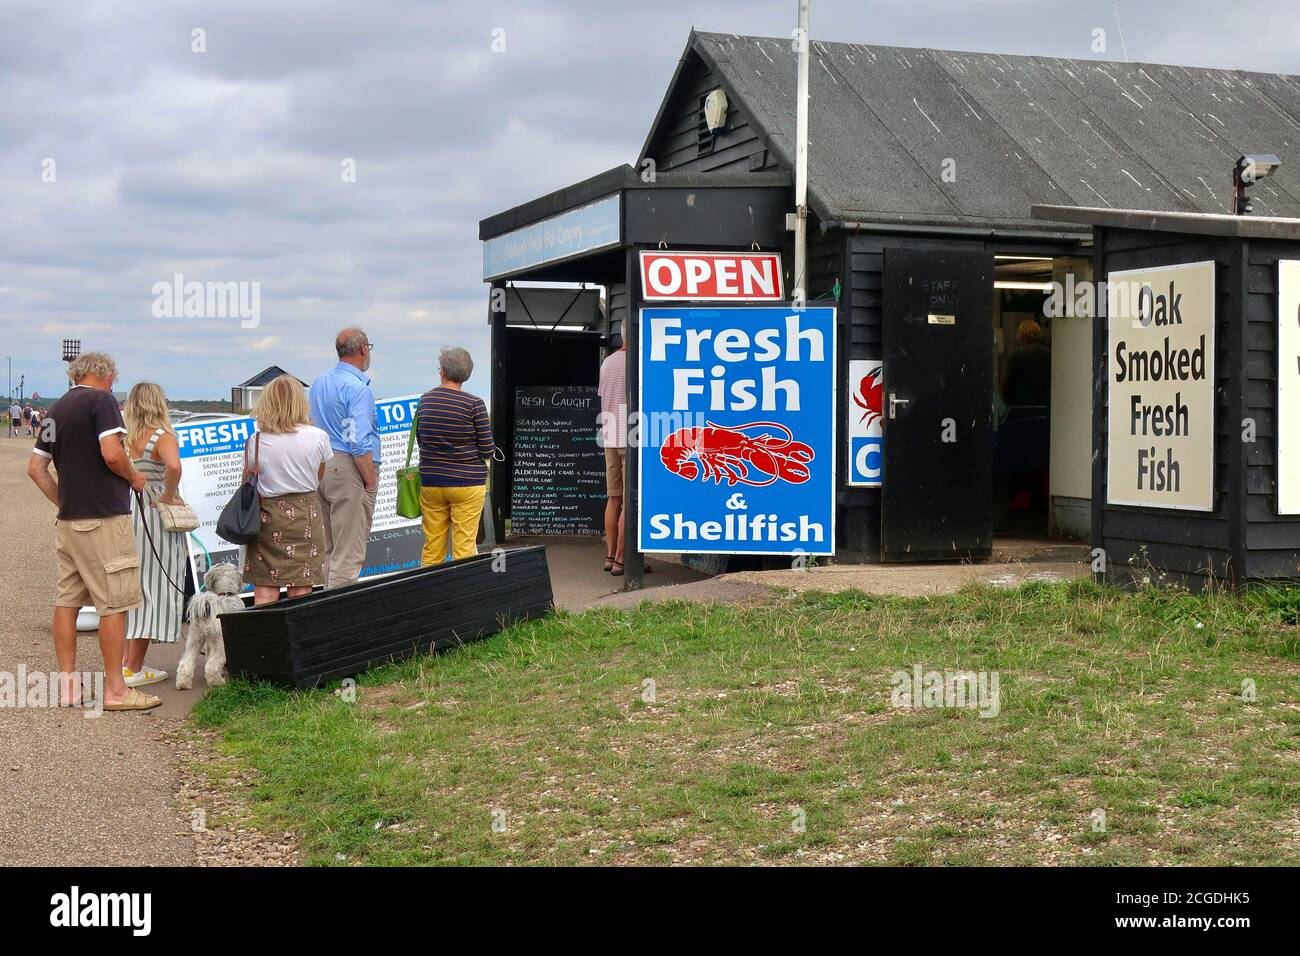 Aldeburgh, Suffolk, UK - 9 September 2020: Sunny autumn day on the East Anglia coast. People in a queue at a fresh fish and seafood seller shed. Stock Photo